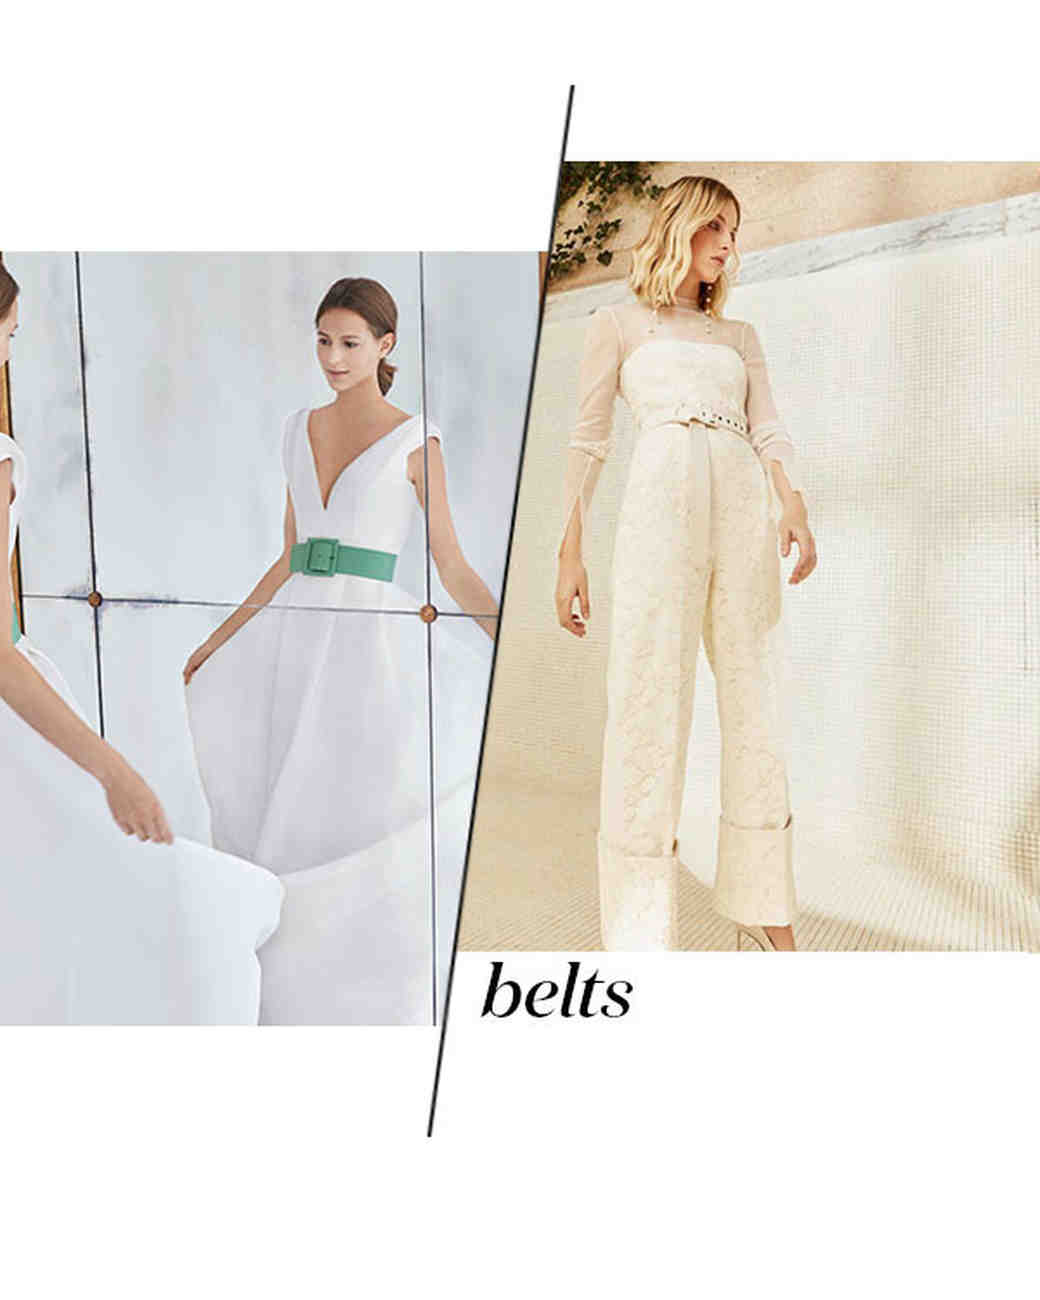 Fall 2018 Wedding Dress Trends, Belts